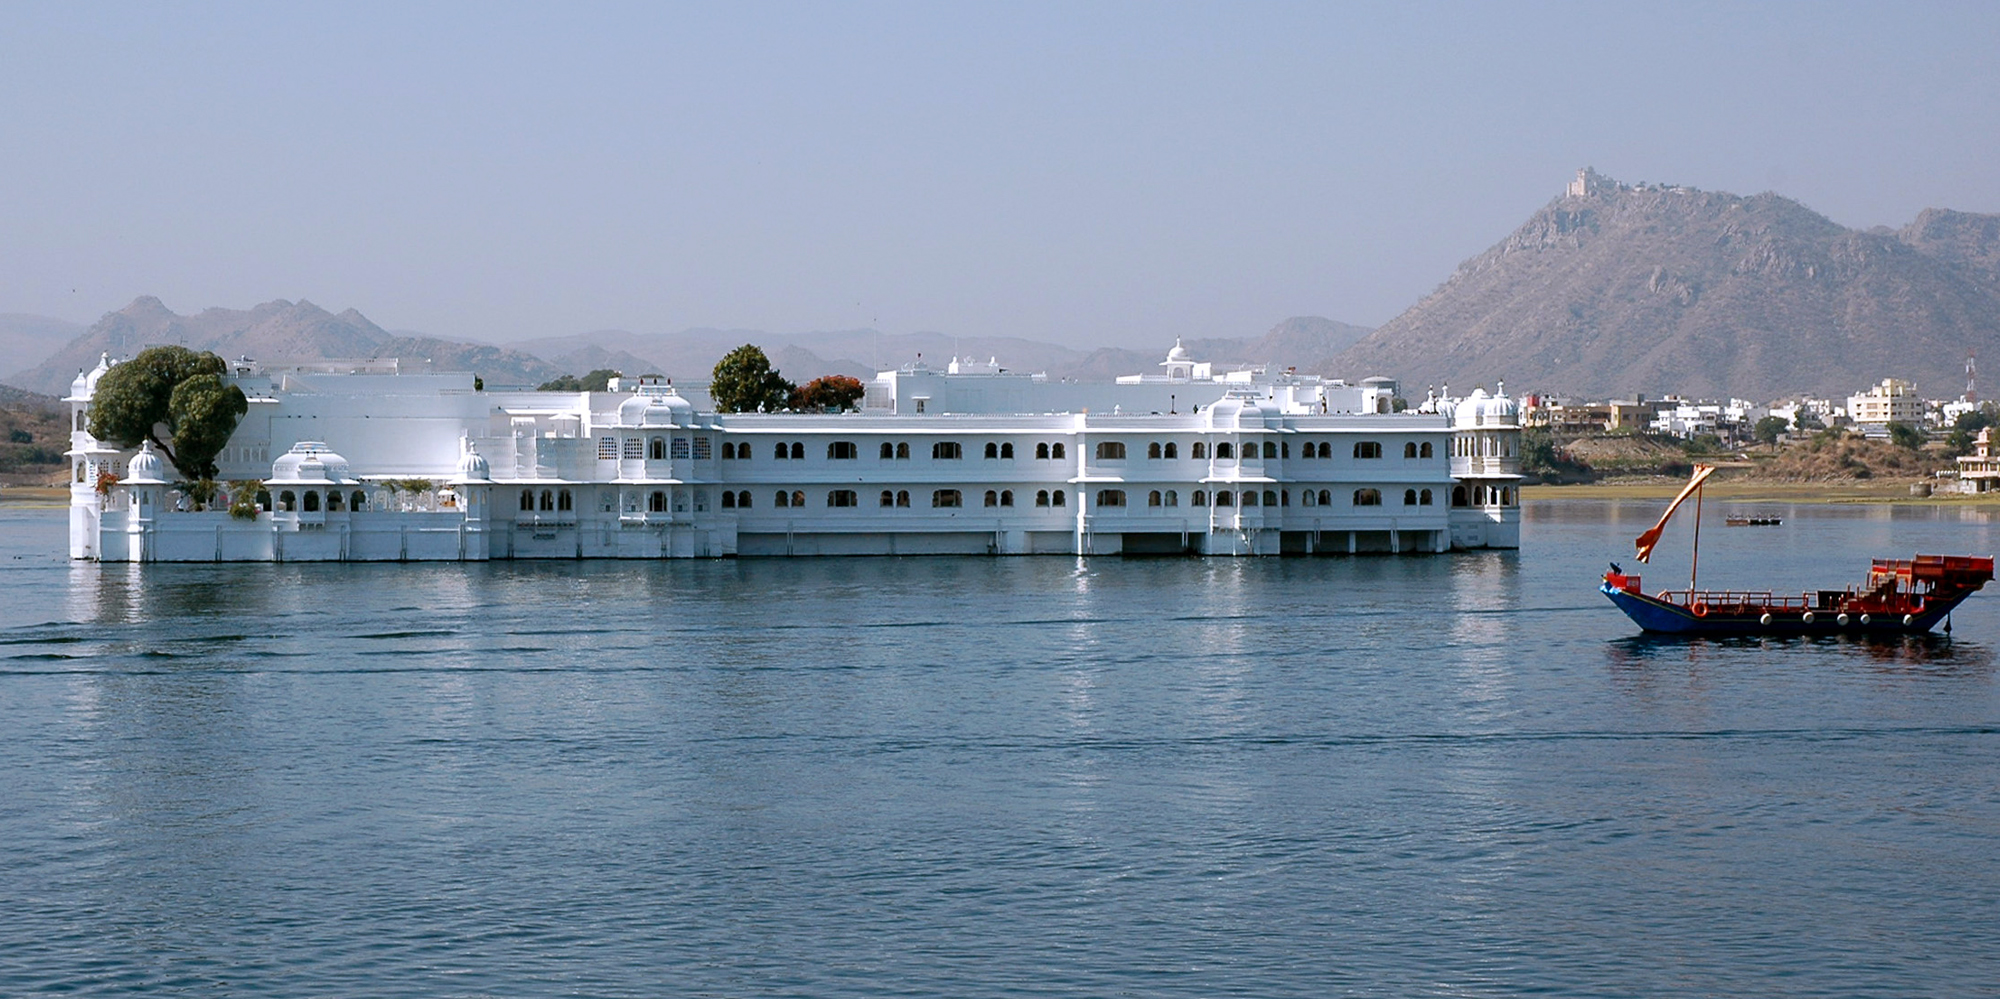 <strong>Lake Palace on Lake Pichola, Udaipur</strong> -